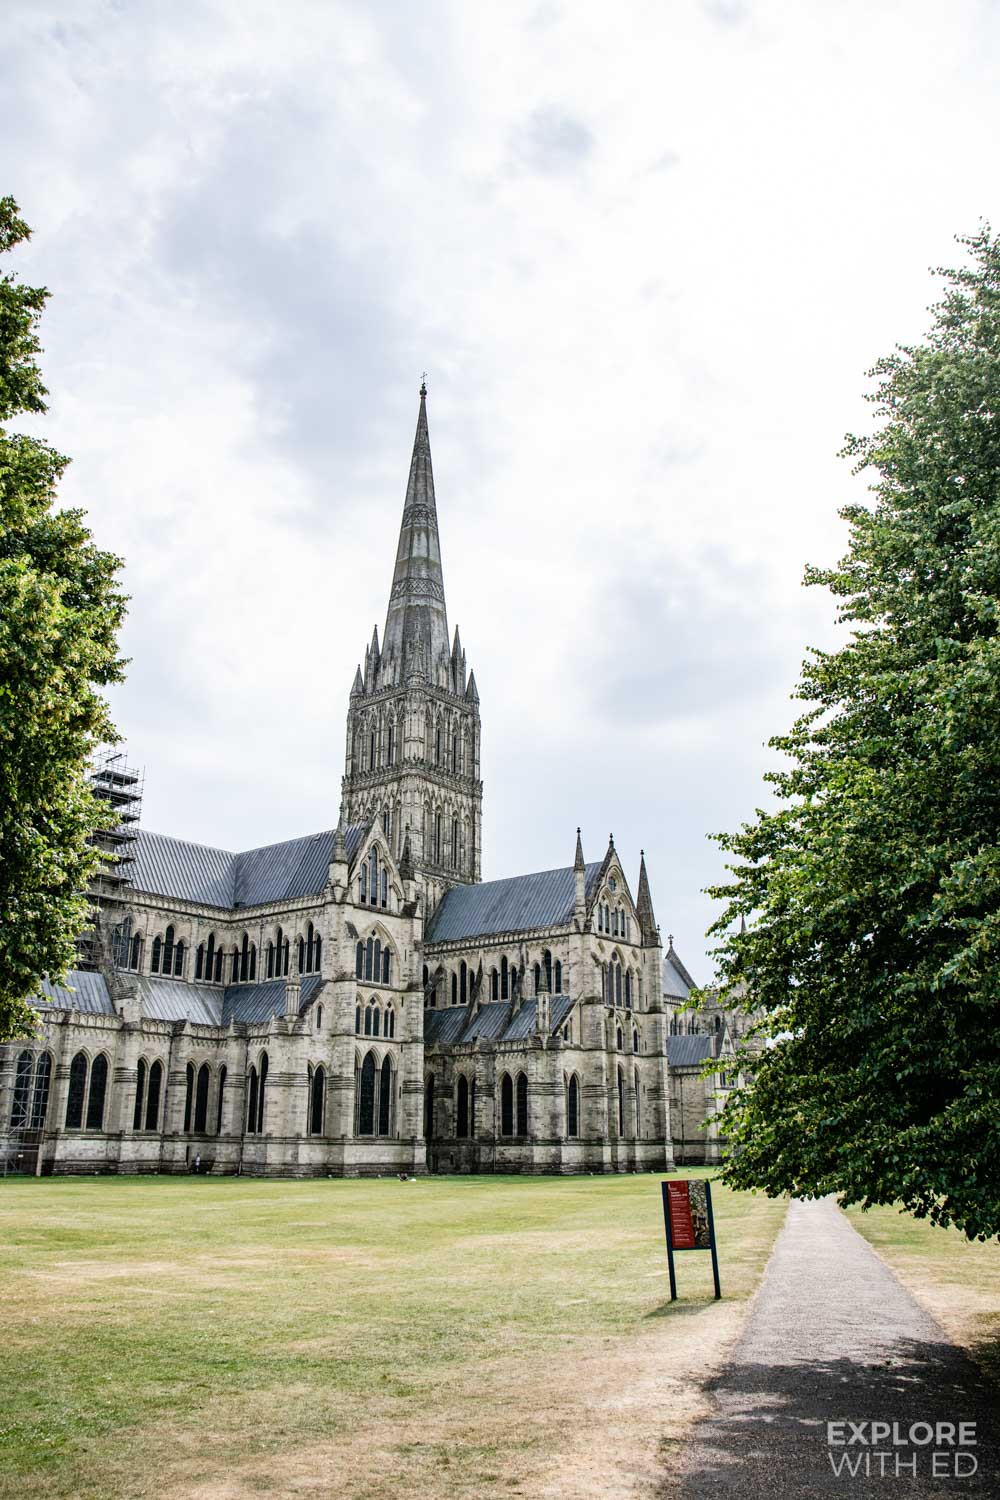 Salisbury Cathedral in Wiltshire has the tallest spire in the UK